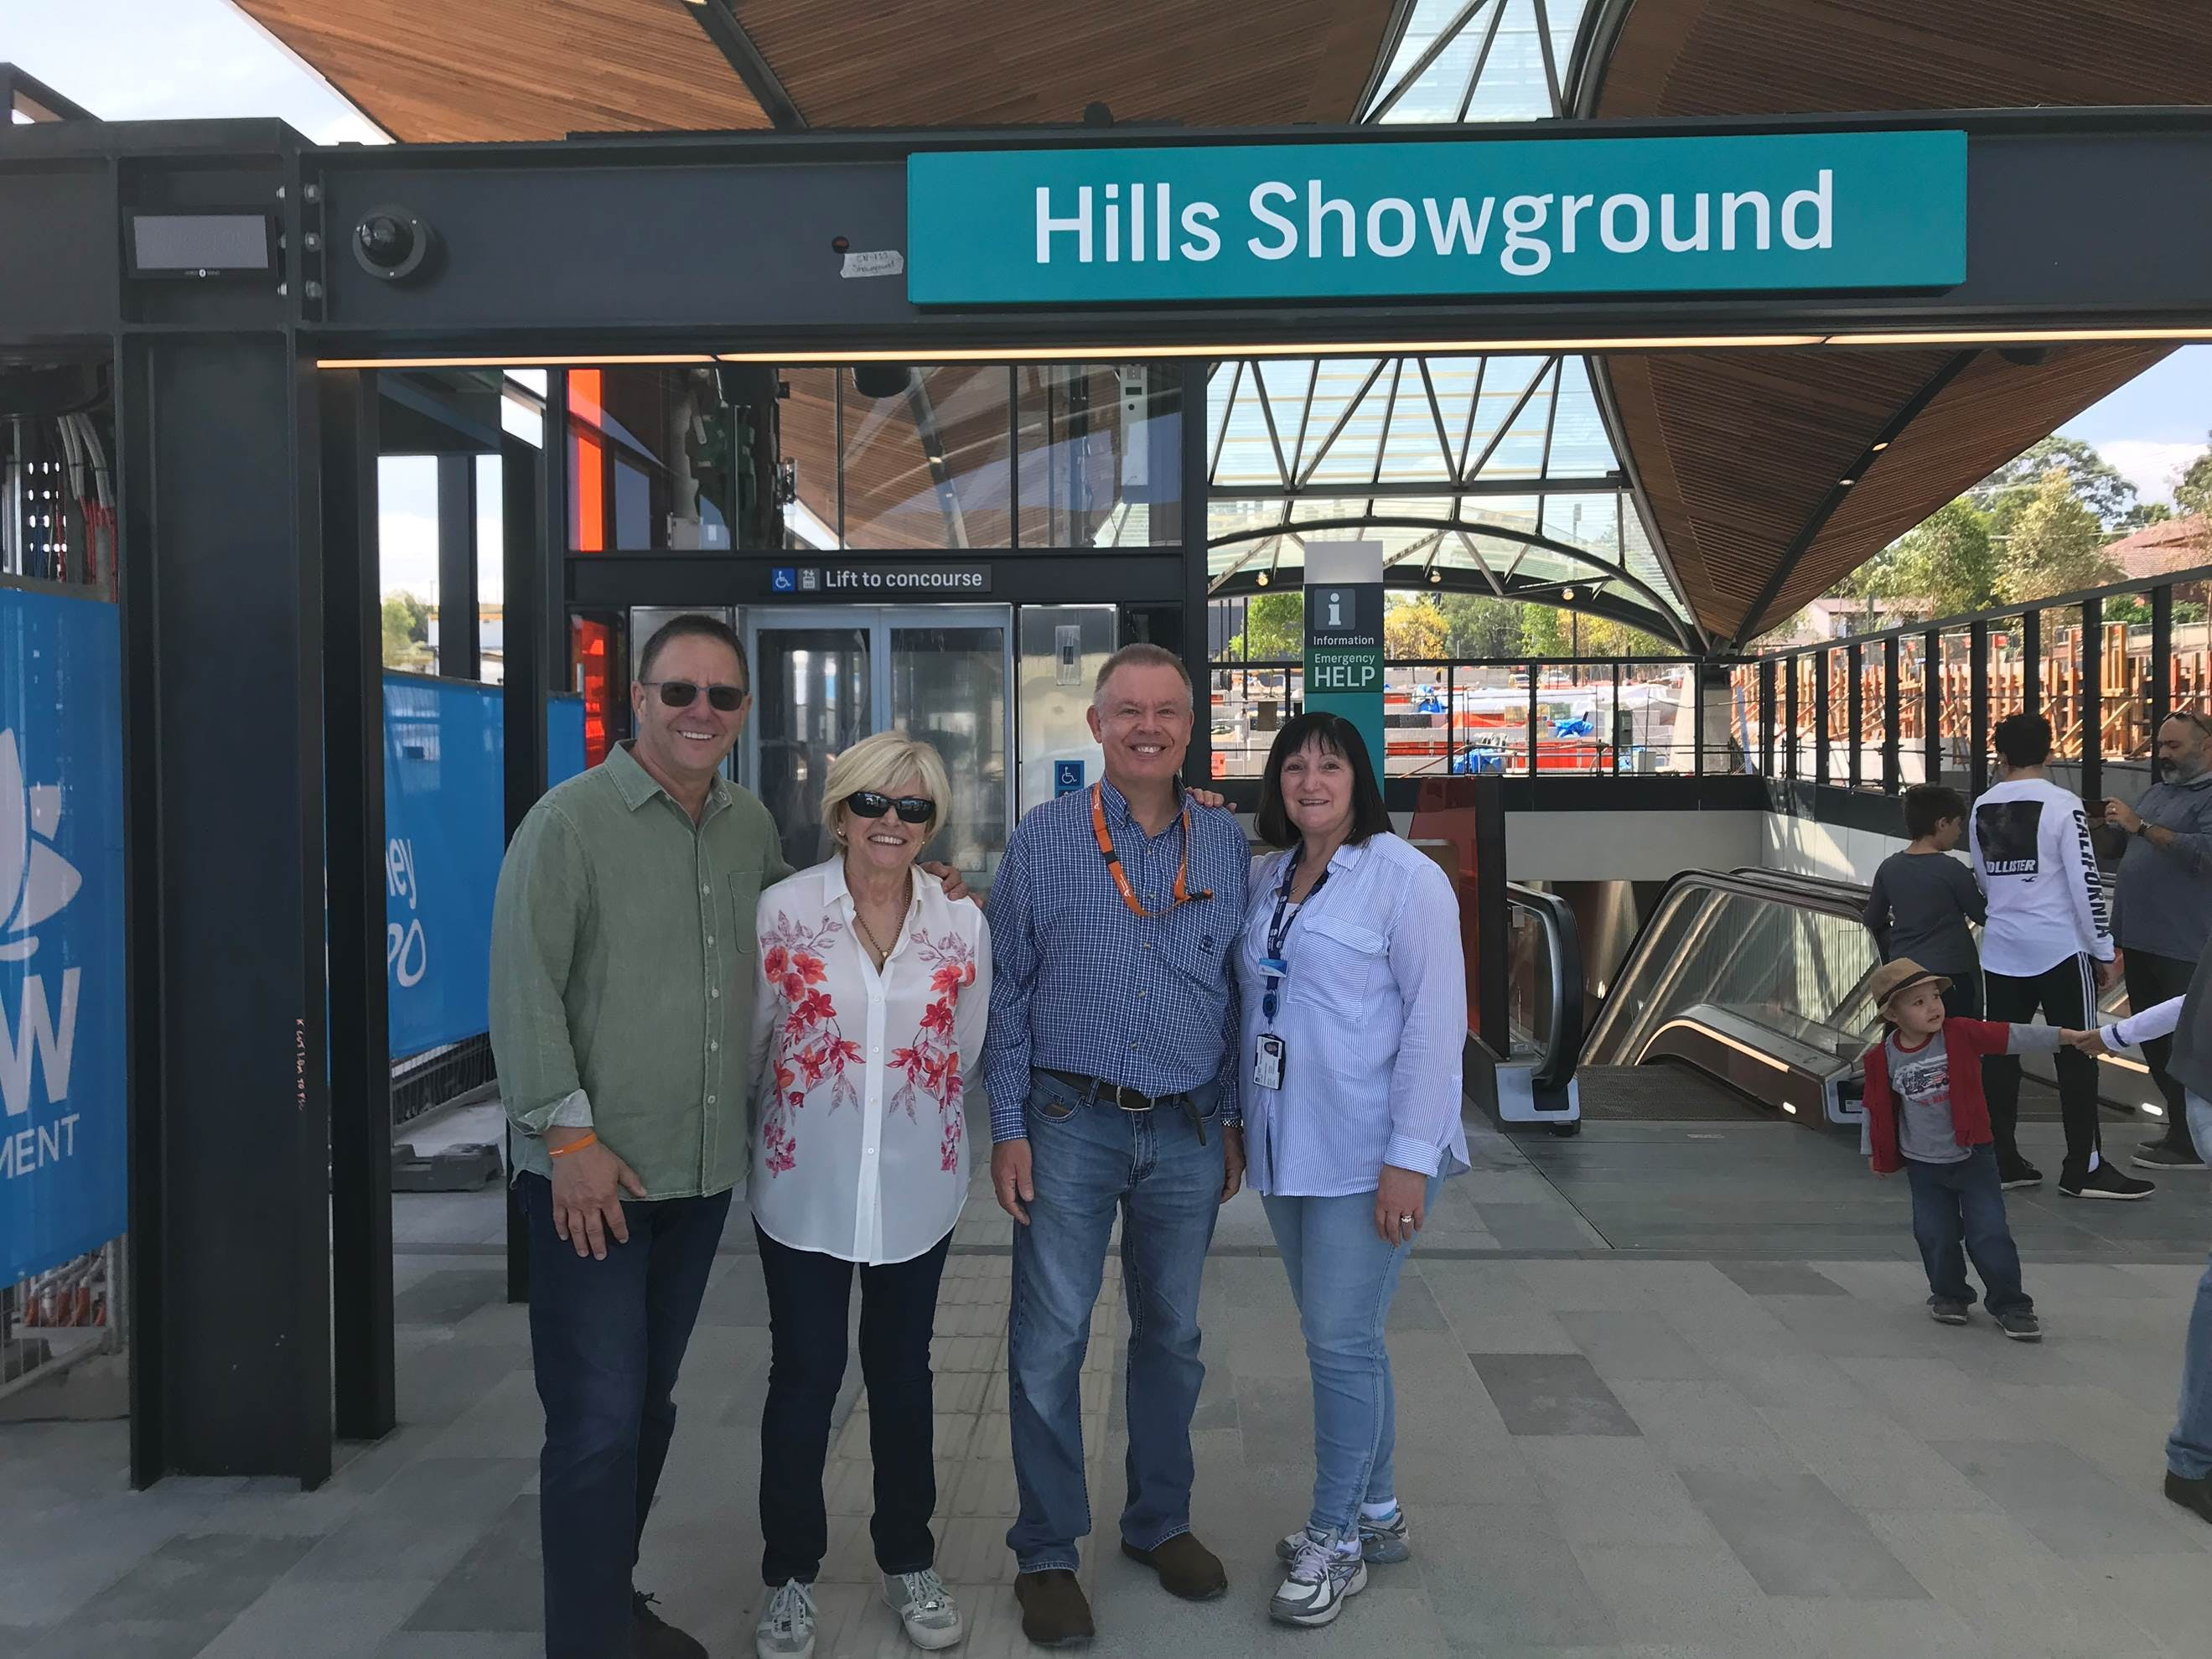 Acting Deputy Secretary, Corporate Services, Anne Hayes and her family visiting the new Hills Showground Metro station